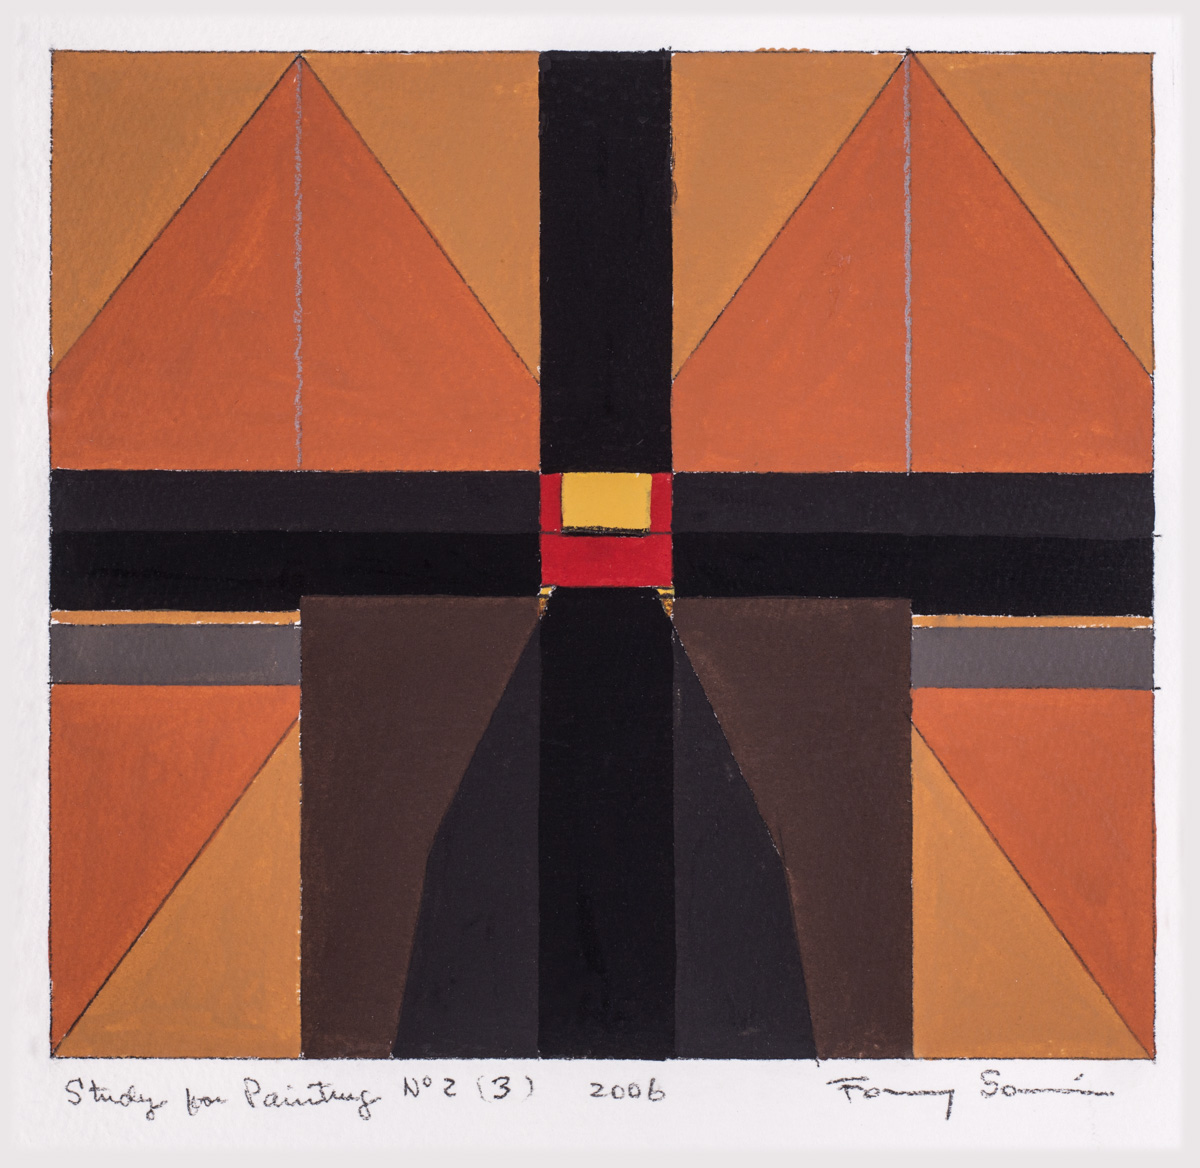 Fanny Sanin. Study for painting N 2(3), 2006